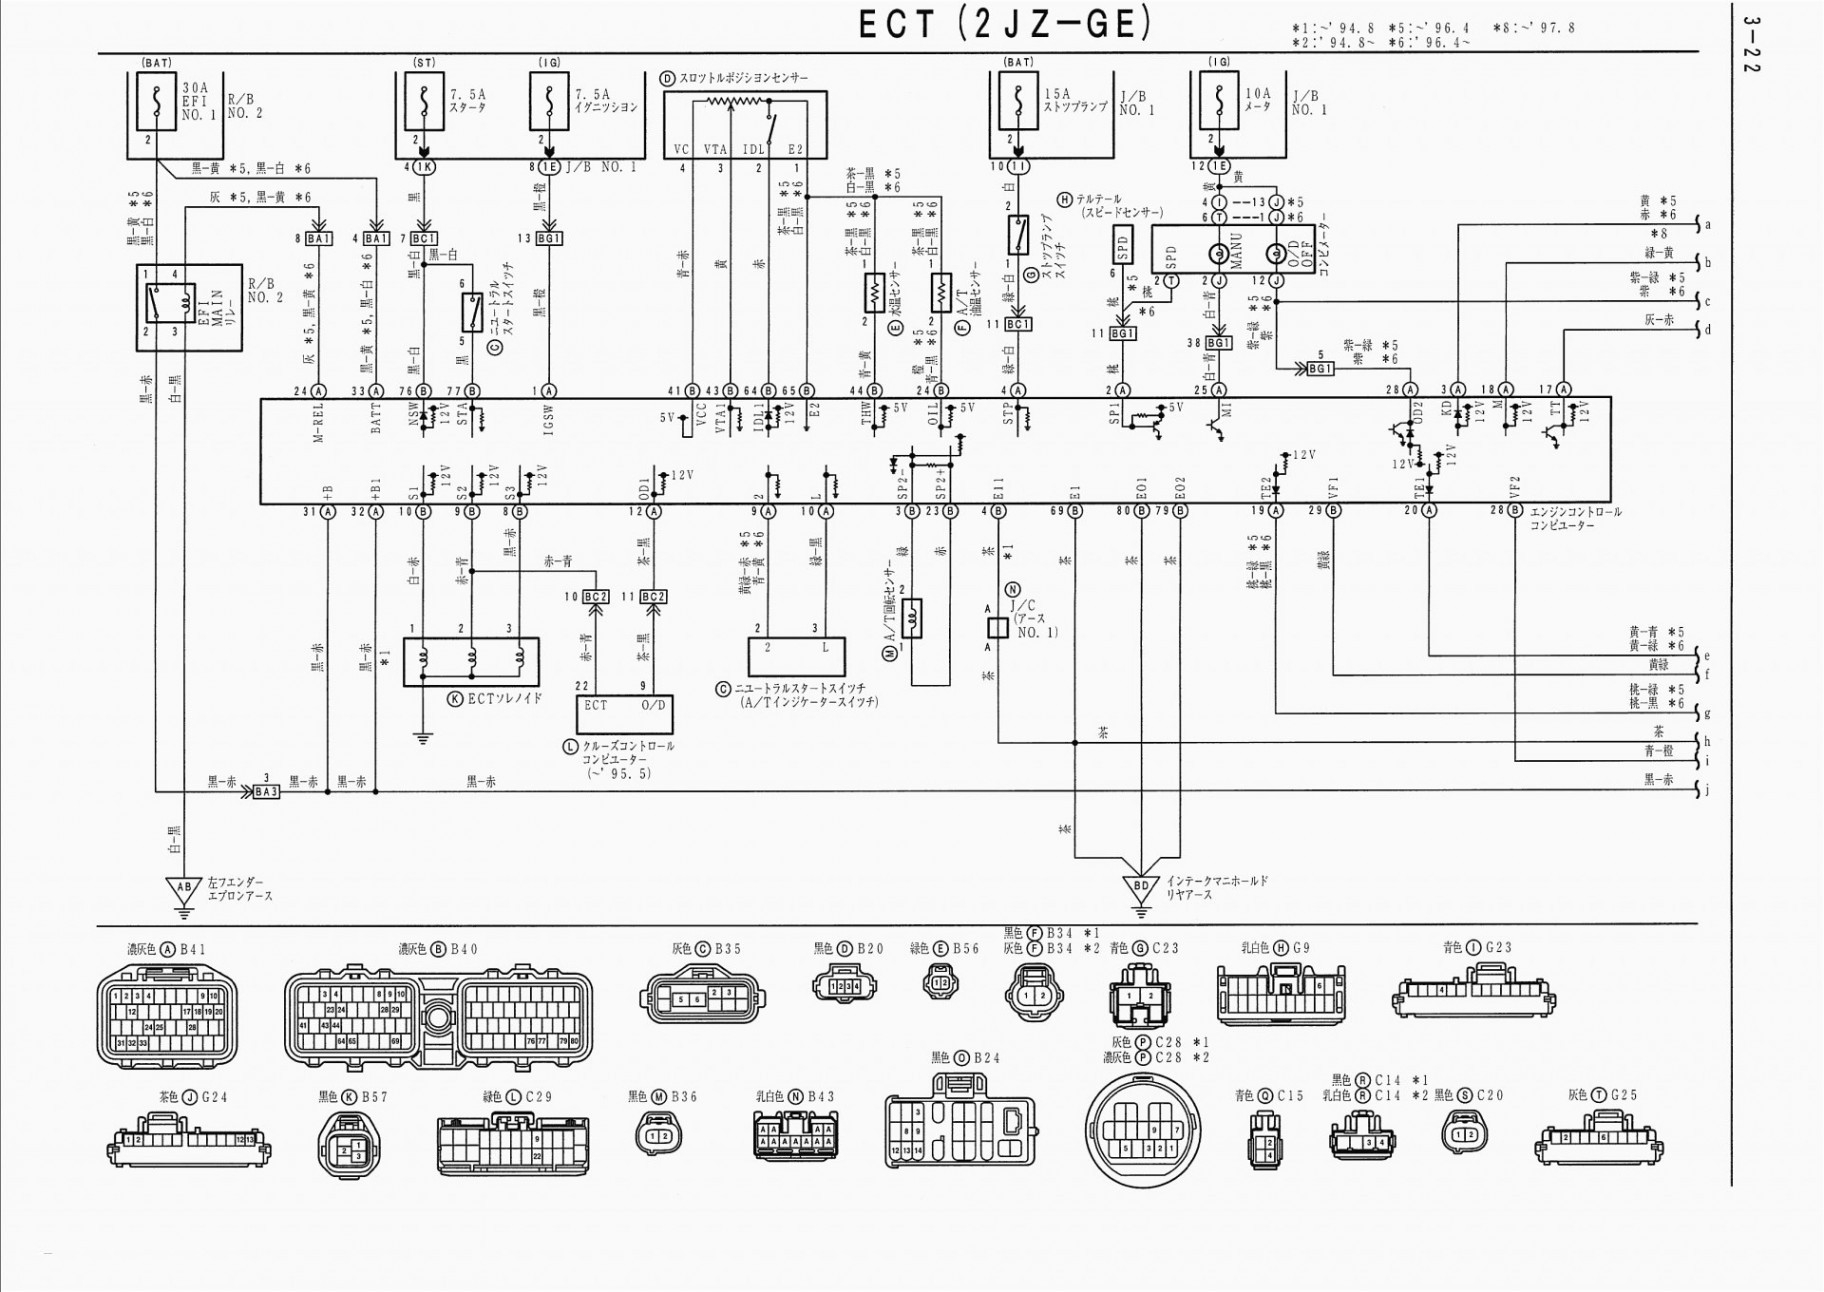 Network Wiring Diagram | Free Wiring Diagram